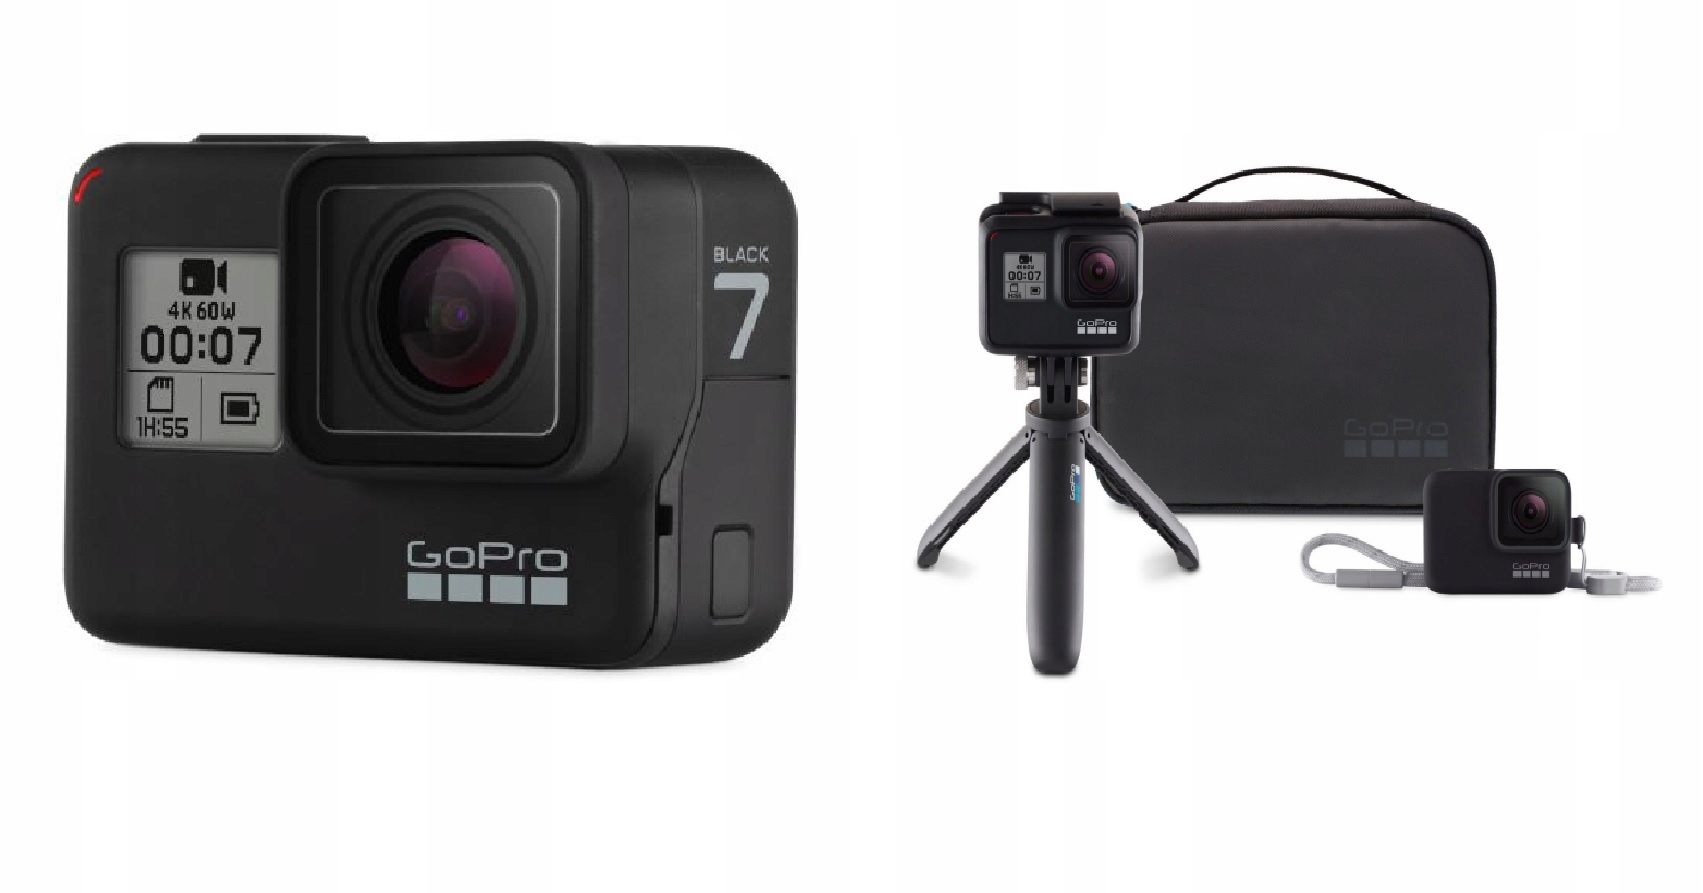 Kamera GoPro HERO7 Black + GoPro Travel Kit